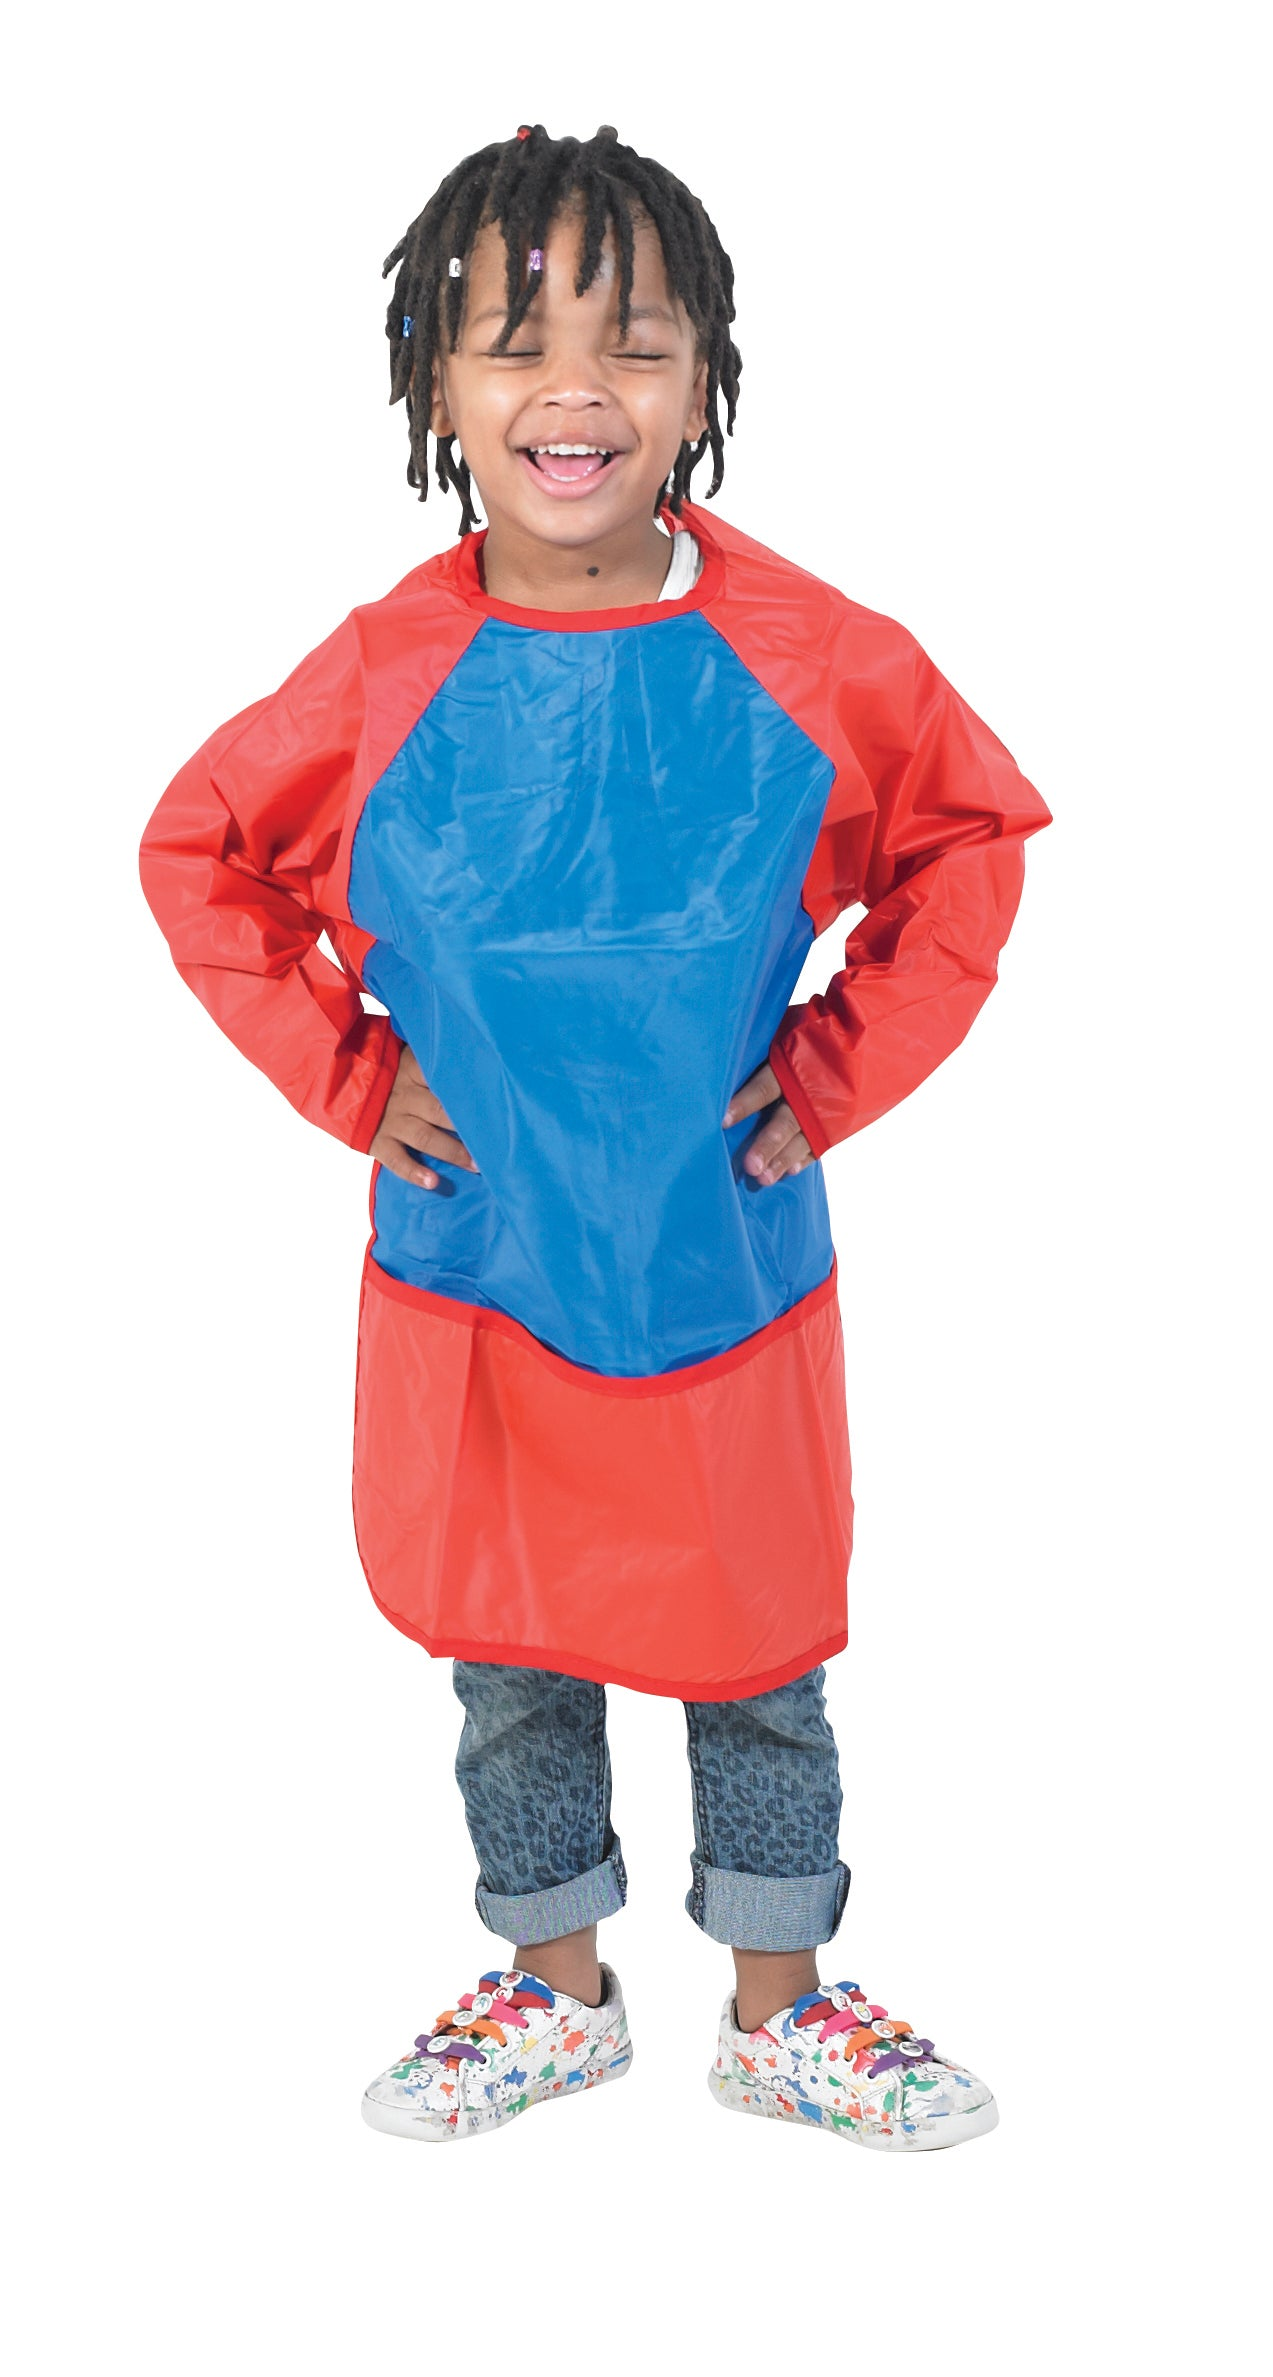 9355 Preschool Smock Factory Select